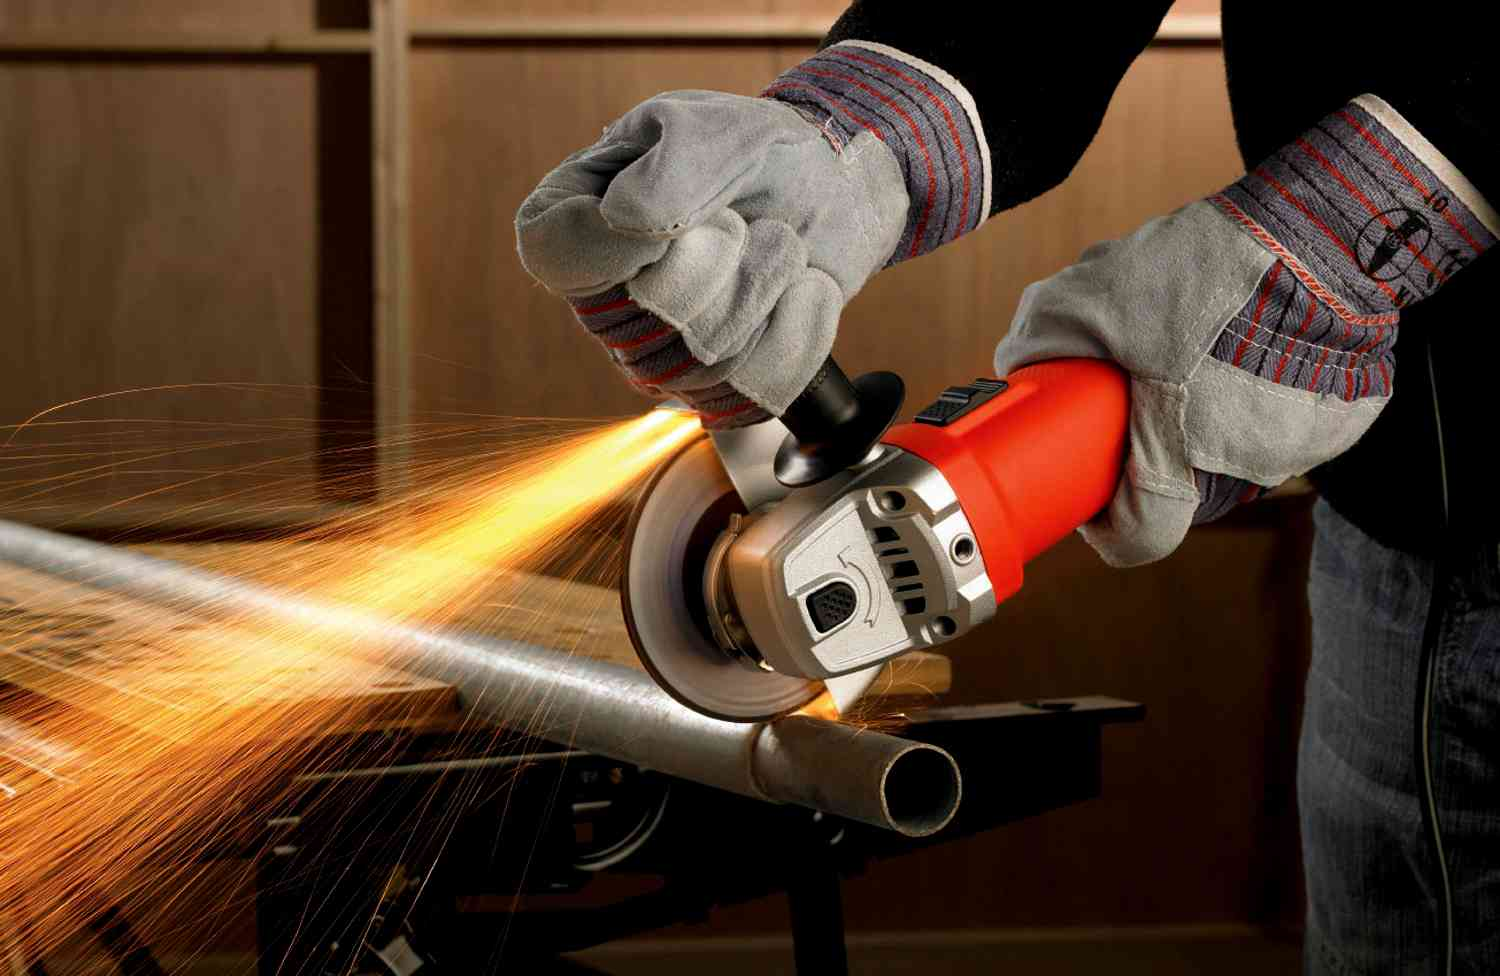 Angle grinder accidents images Tree Trimming Pruning Guide: Tips, Techniques For